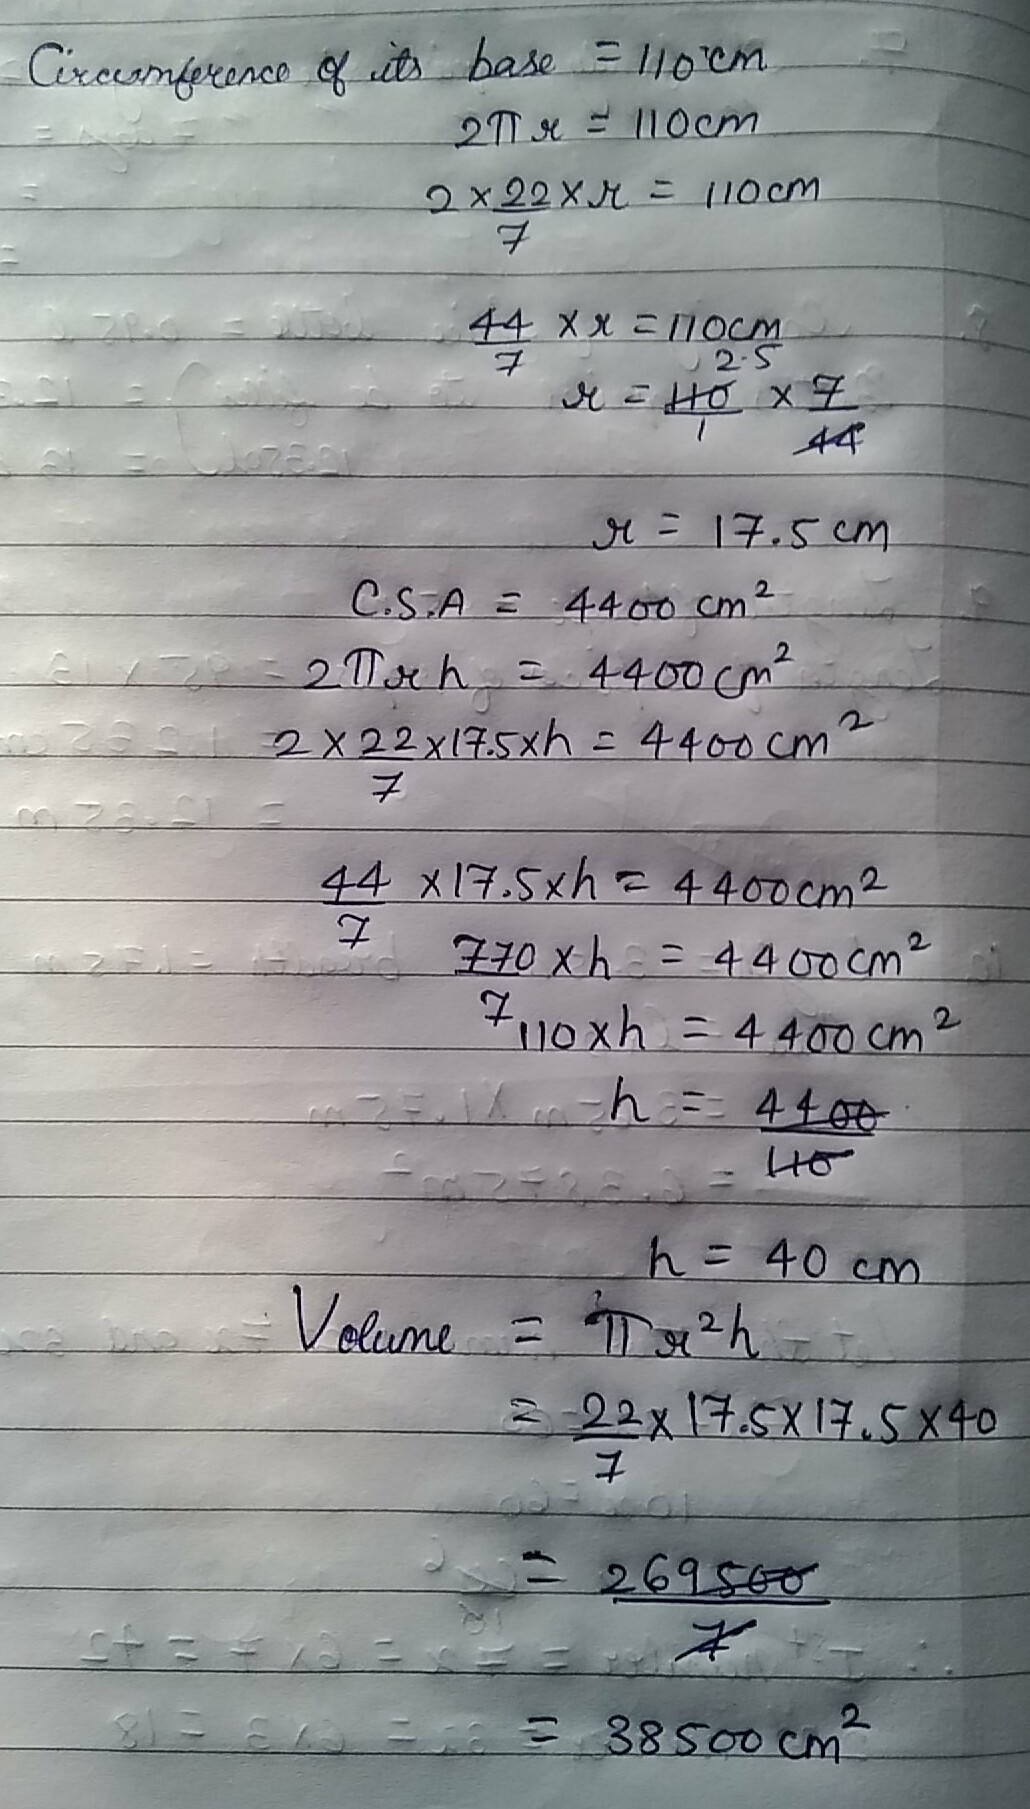 The Curved Surface Area Of A Cylinder Is Cm2 And The